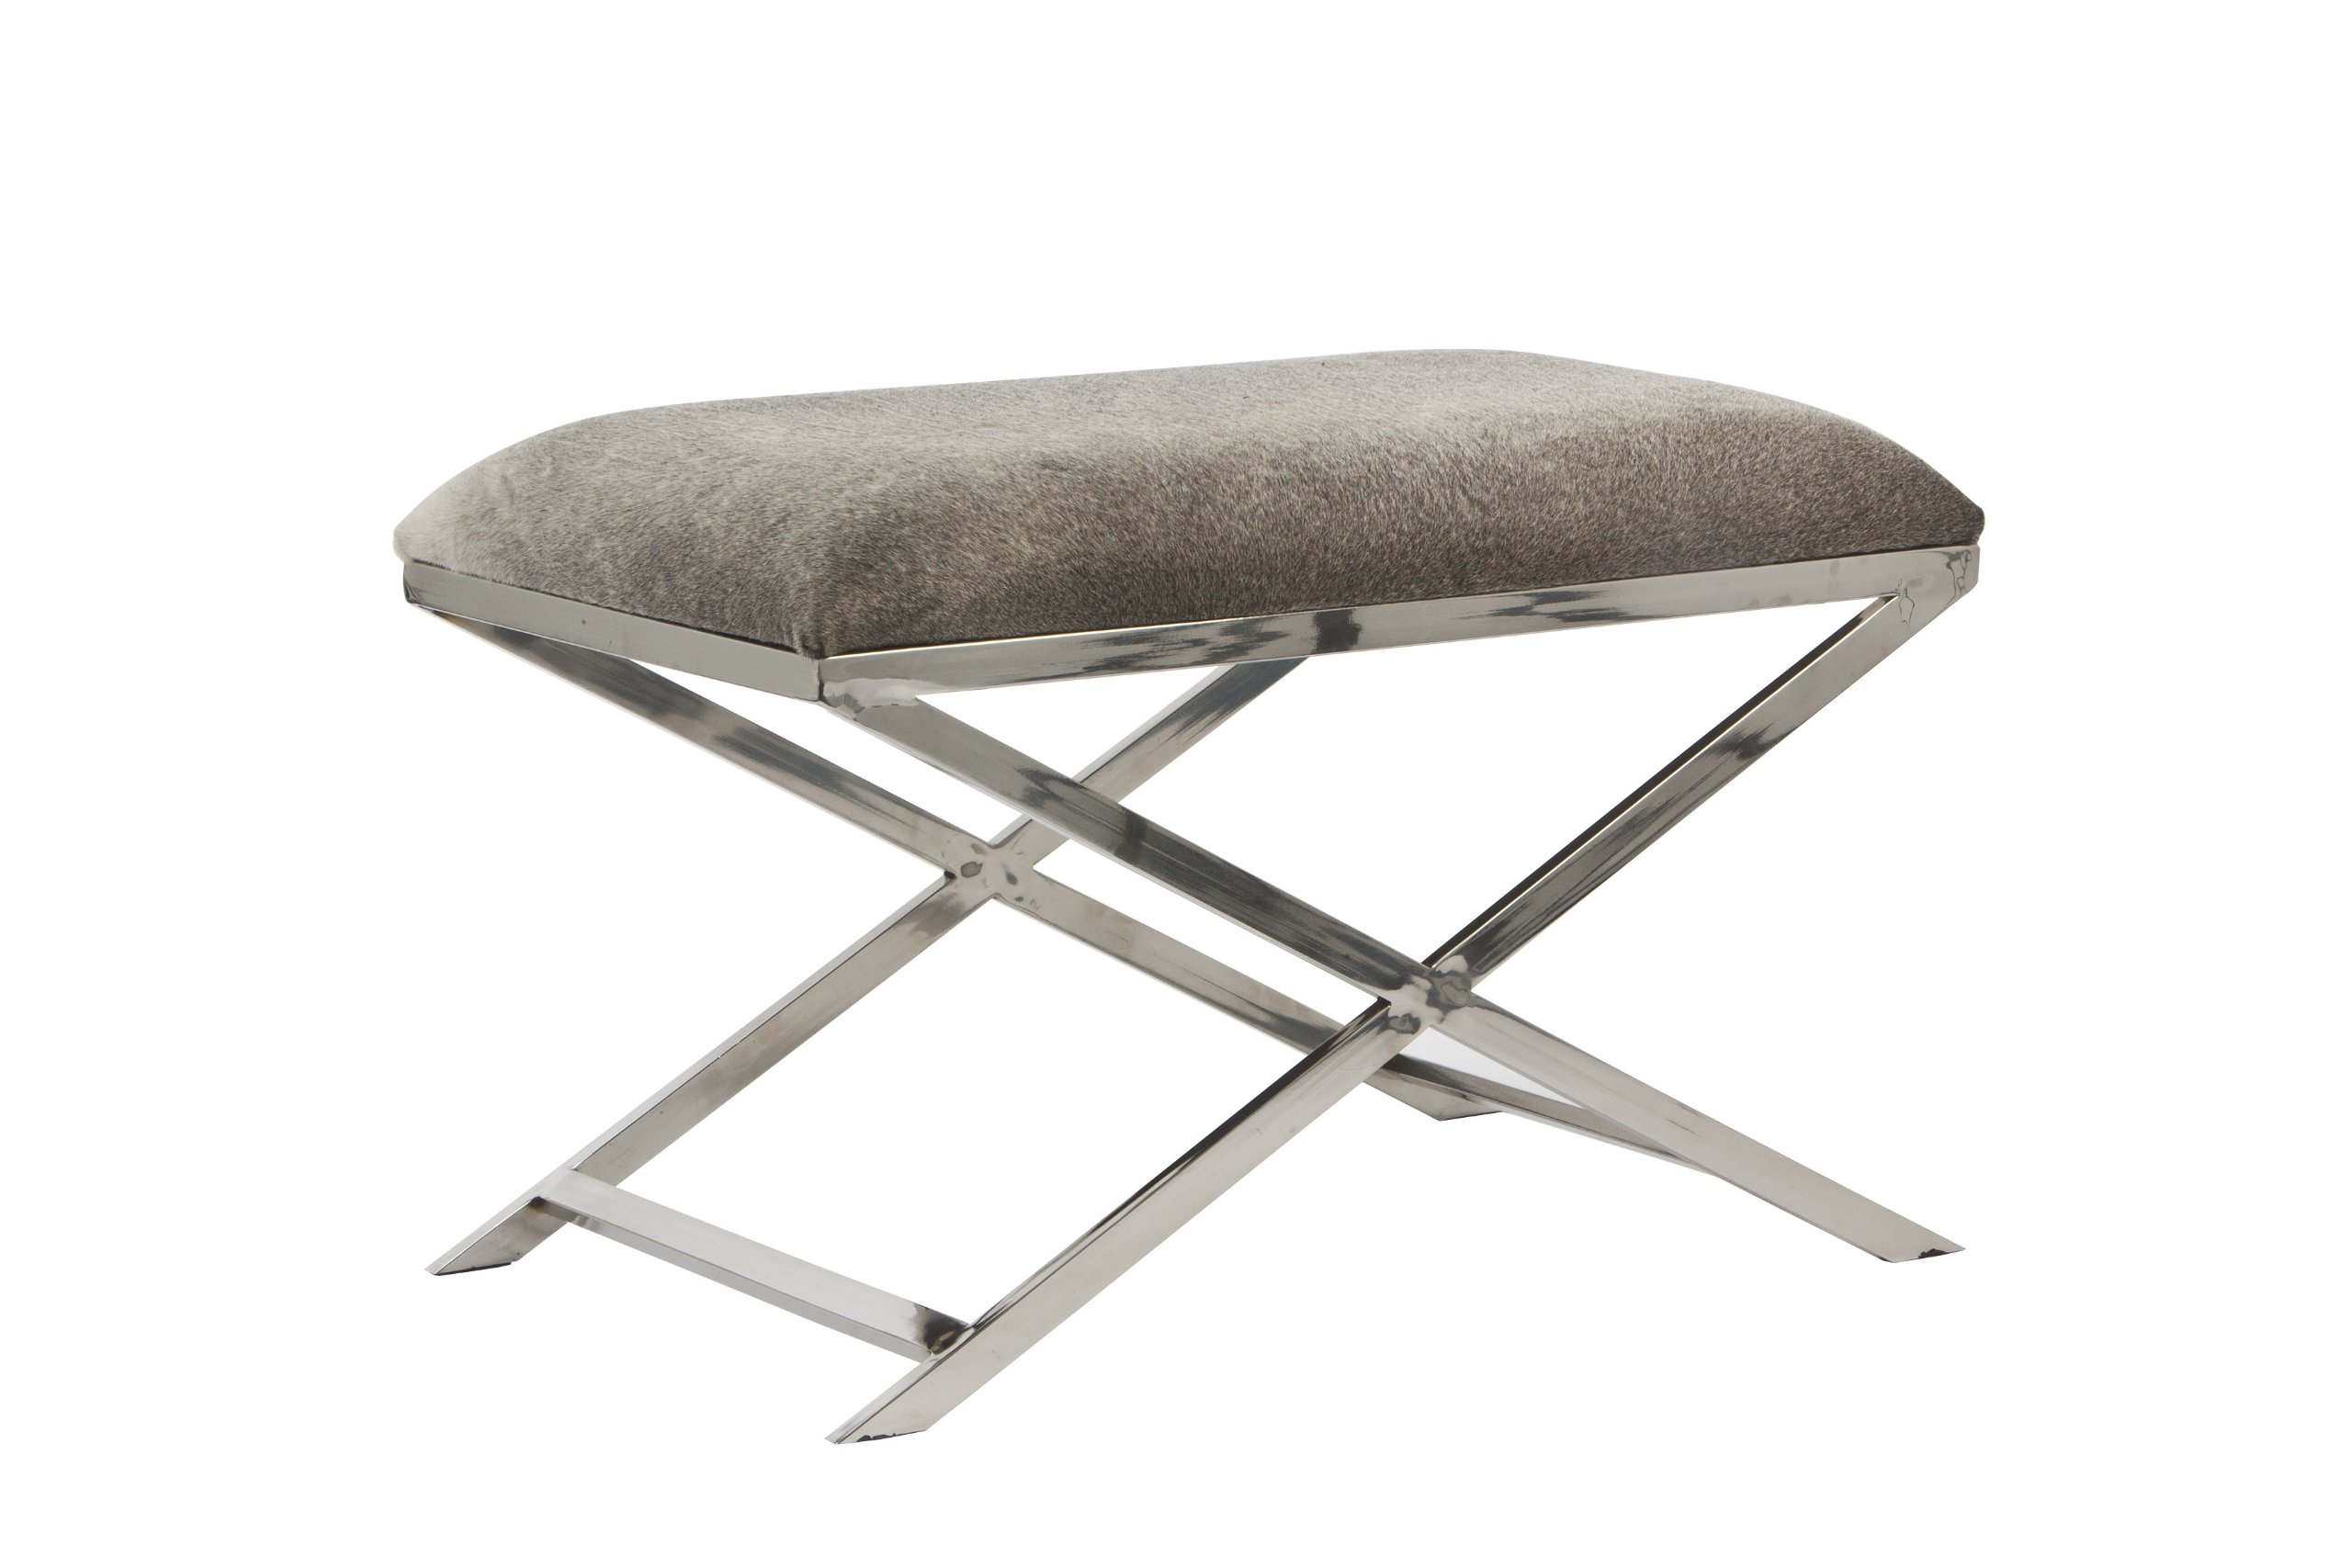 The SAM Rectangle Nickel Stool with Grey Cowskin, 29.5 x 18 x 19h